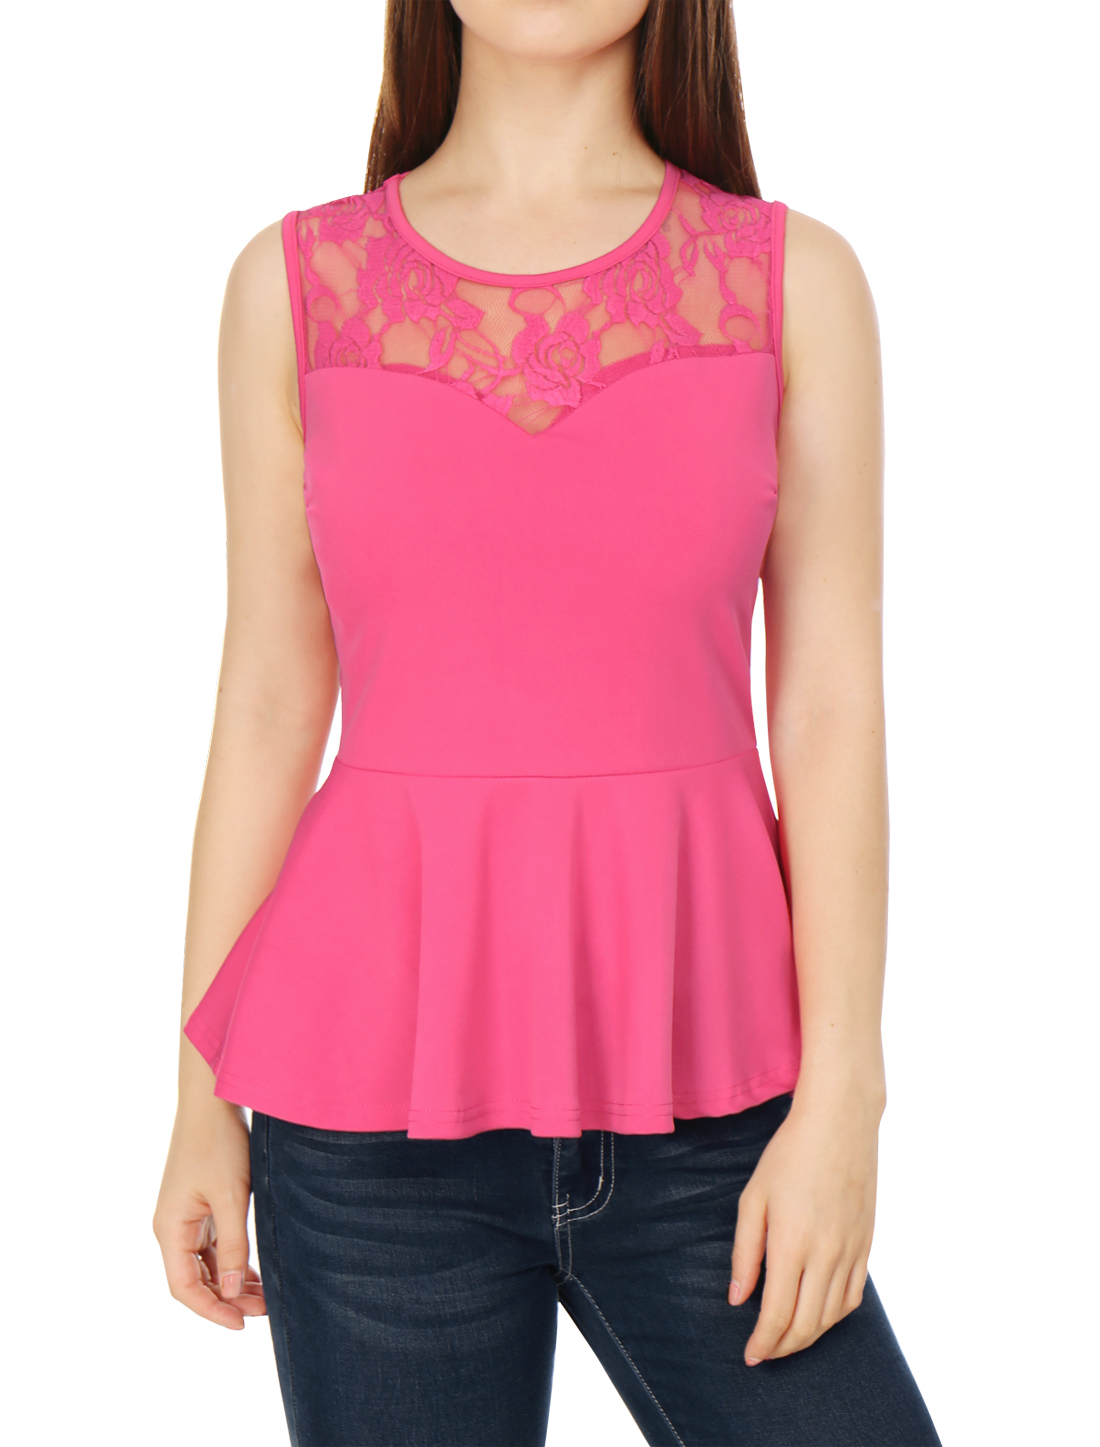 Women Round Neck Lace-Paneled Sleeveless Peplum Top Pink XL